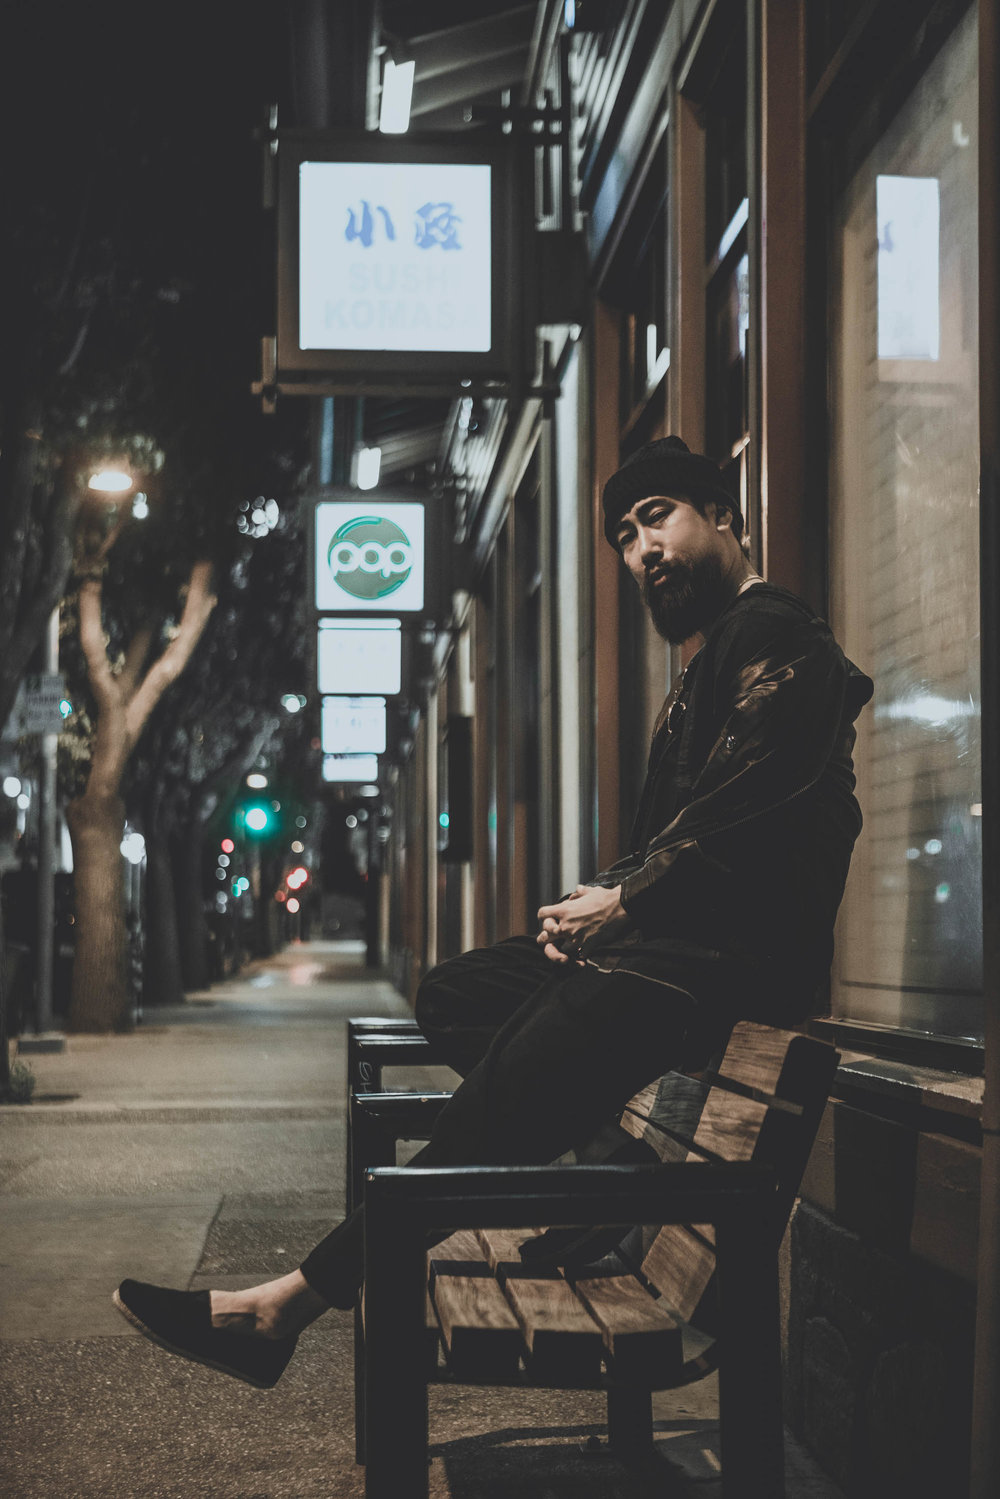 justfeng ryan feng asian beard streetstyle style menstyle ootdmen